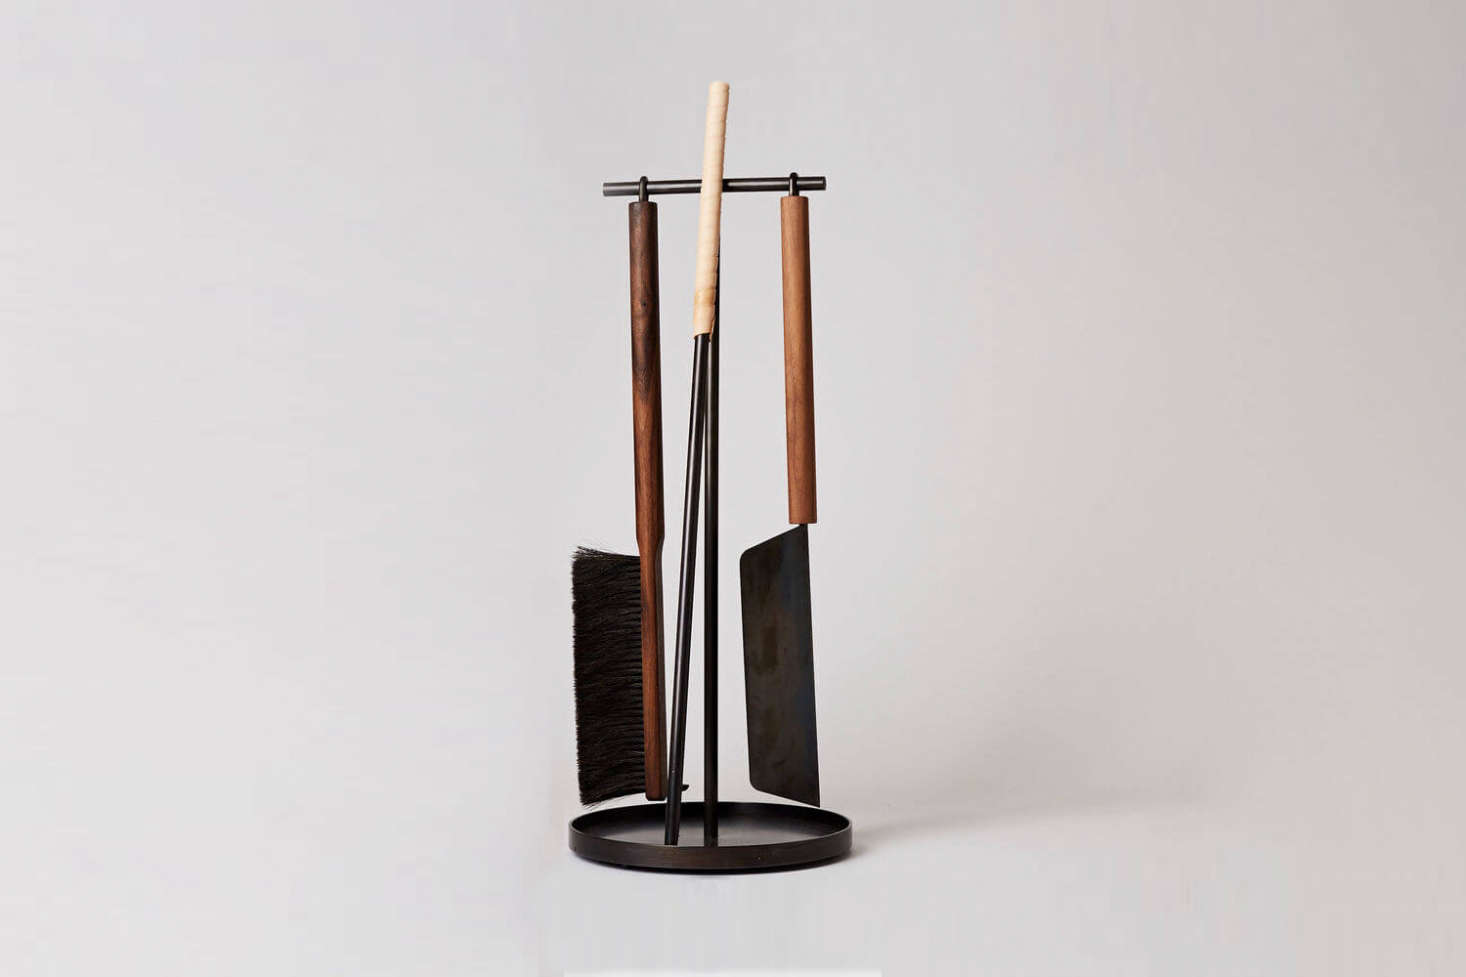 World S Most Beautiful Fireplace Tools From Mj 246 Lk In